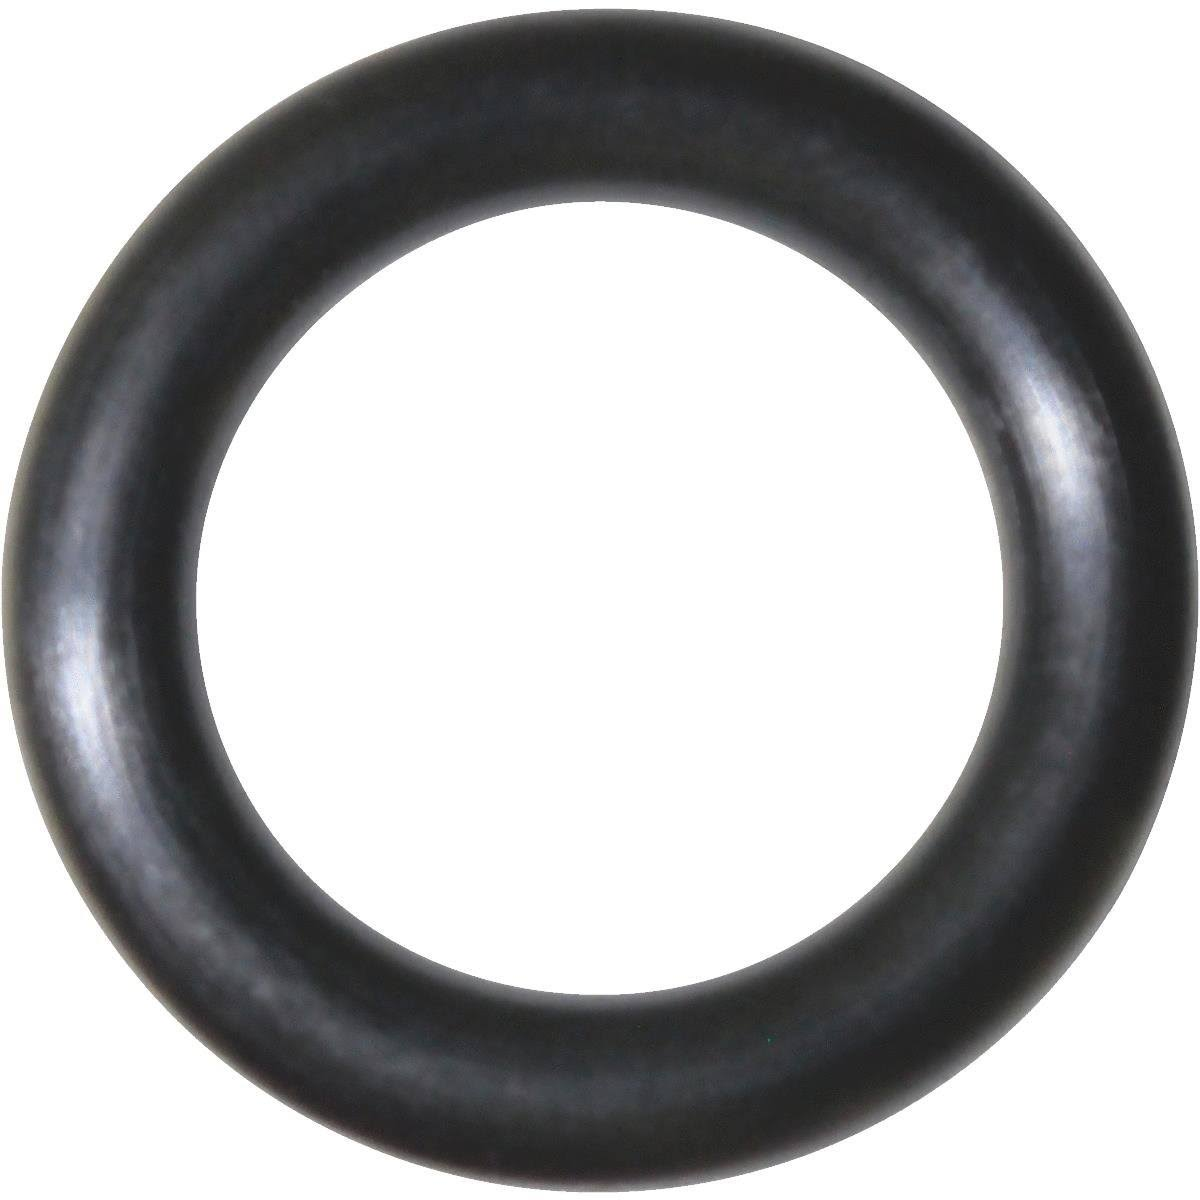 Danco Perfect Match O-Ring - 13/16in x 9/16in x 1/8in